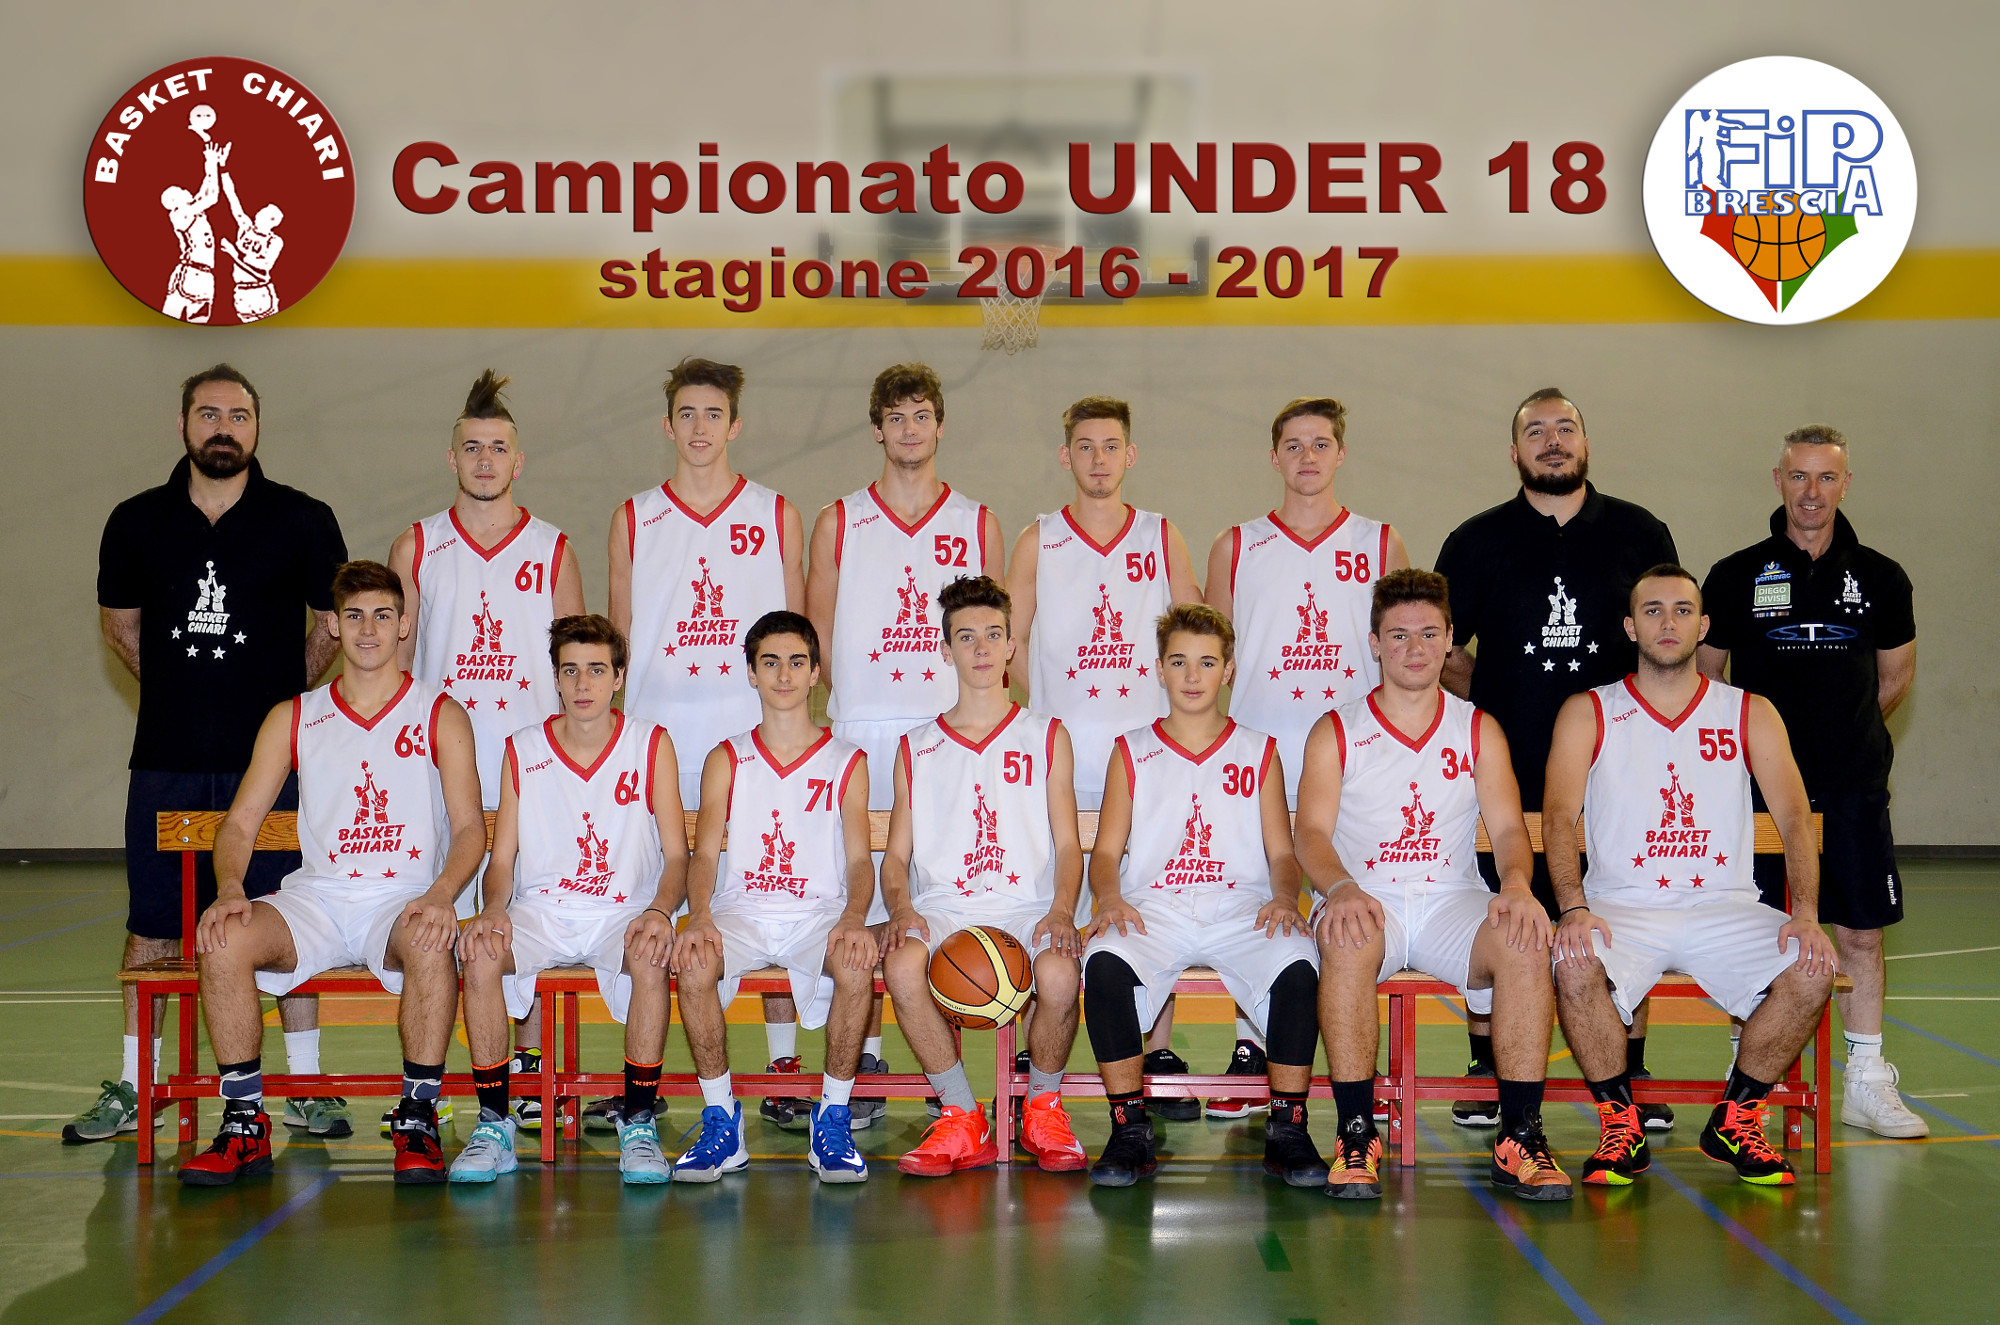 Basket Chiari - Under 18 - 20165/2017